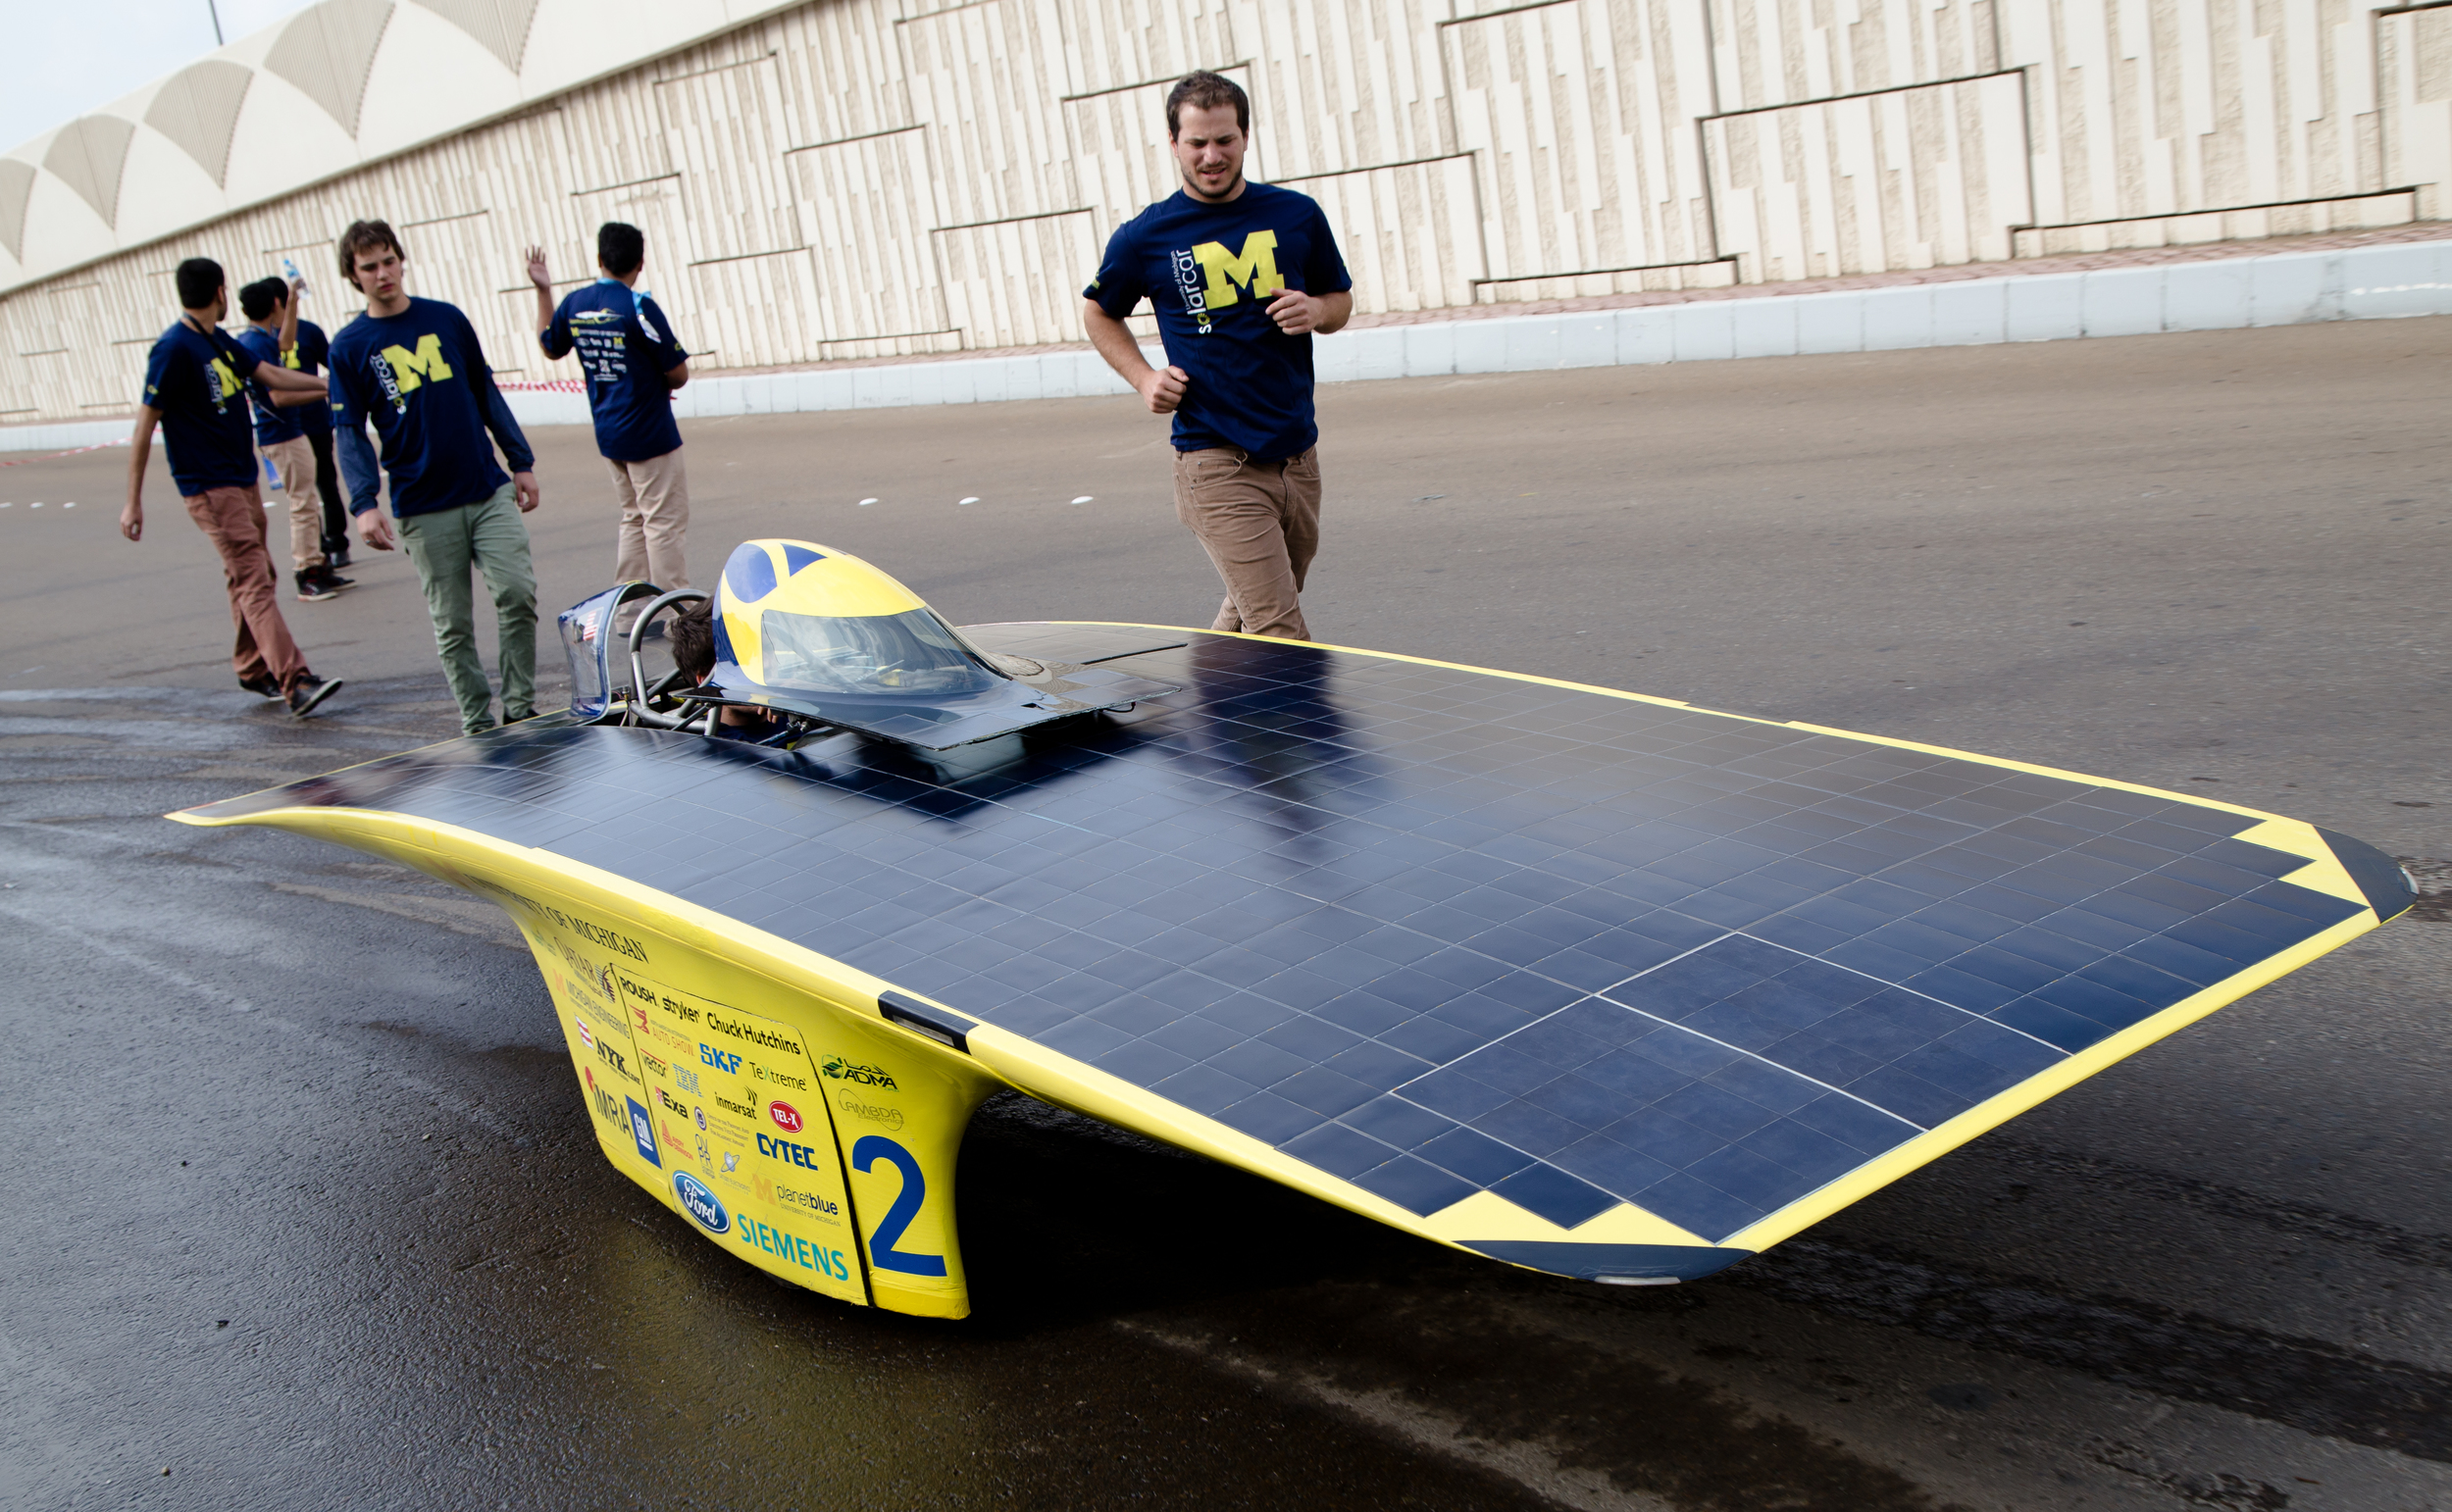 USA Today | Race to Abu Dhabi pays off for Michigan solar car team